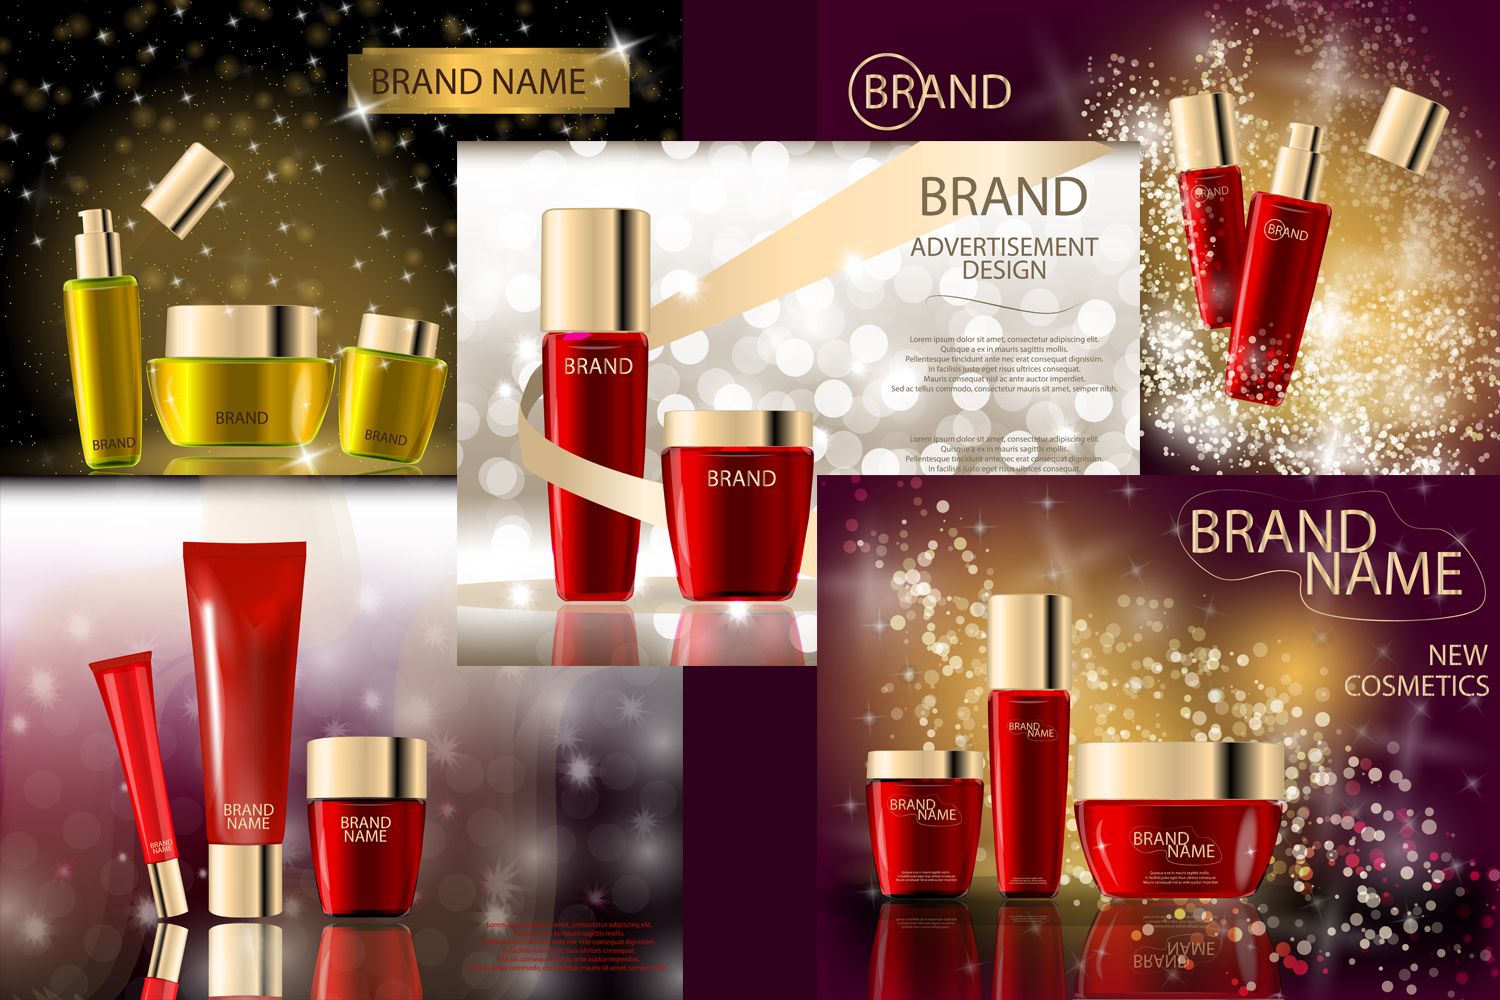 Glamorous Beauty Care Products Packages, Mock-ups, 3D Realistic Vector template example image 1